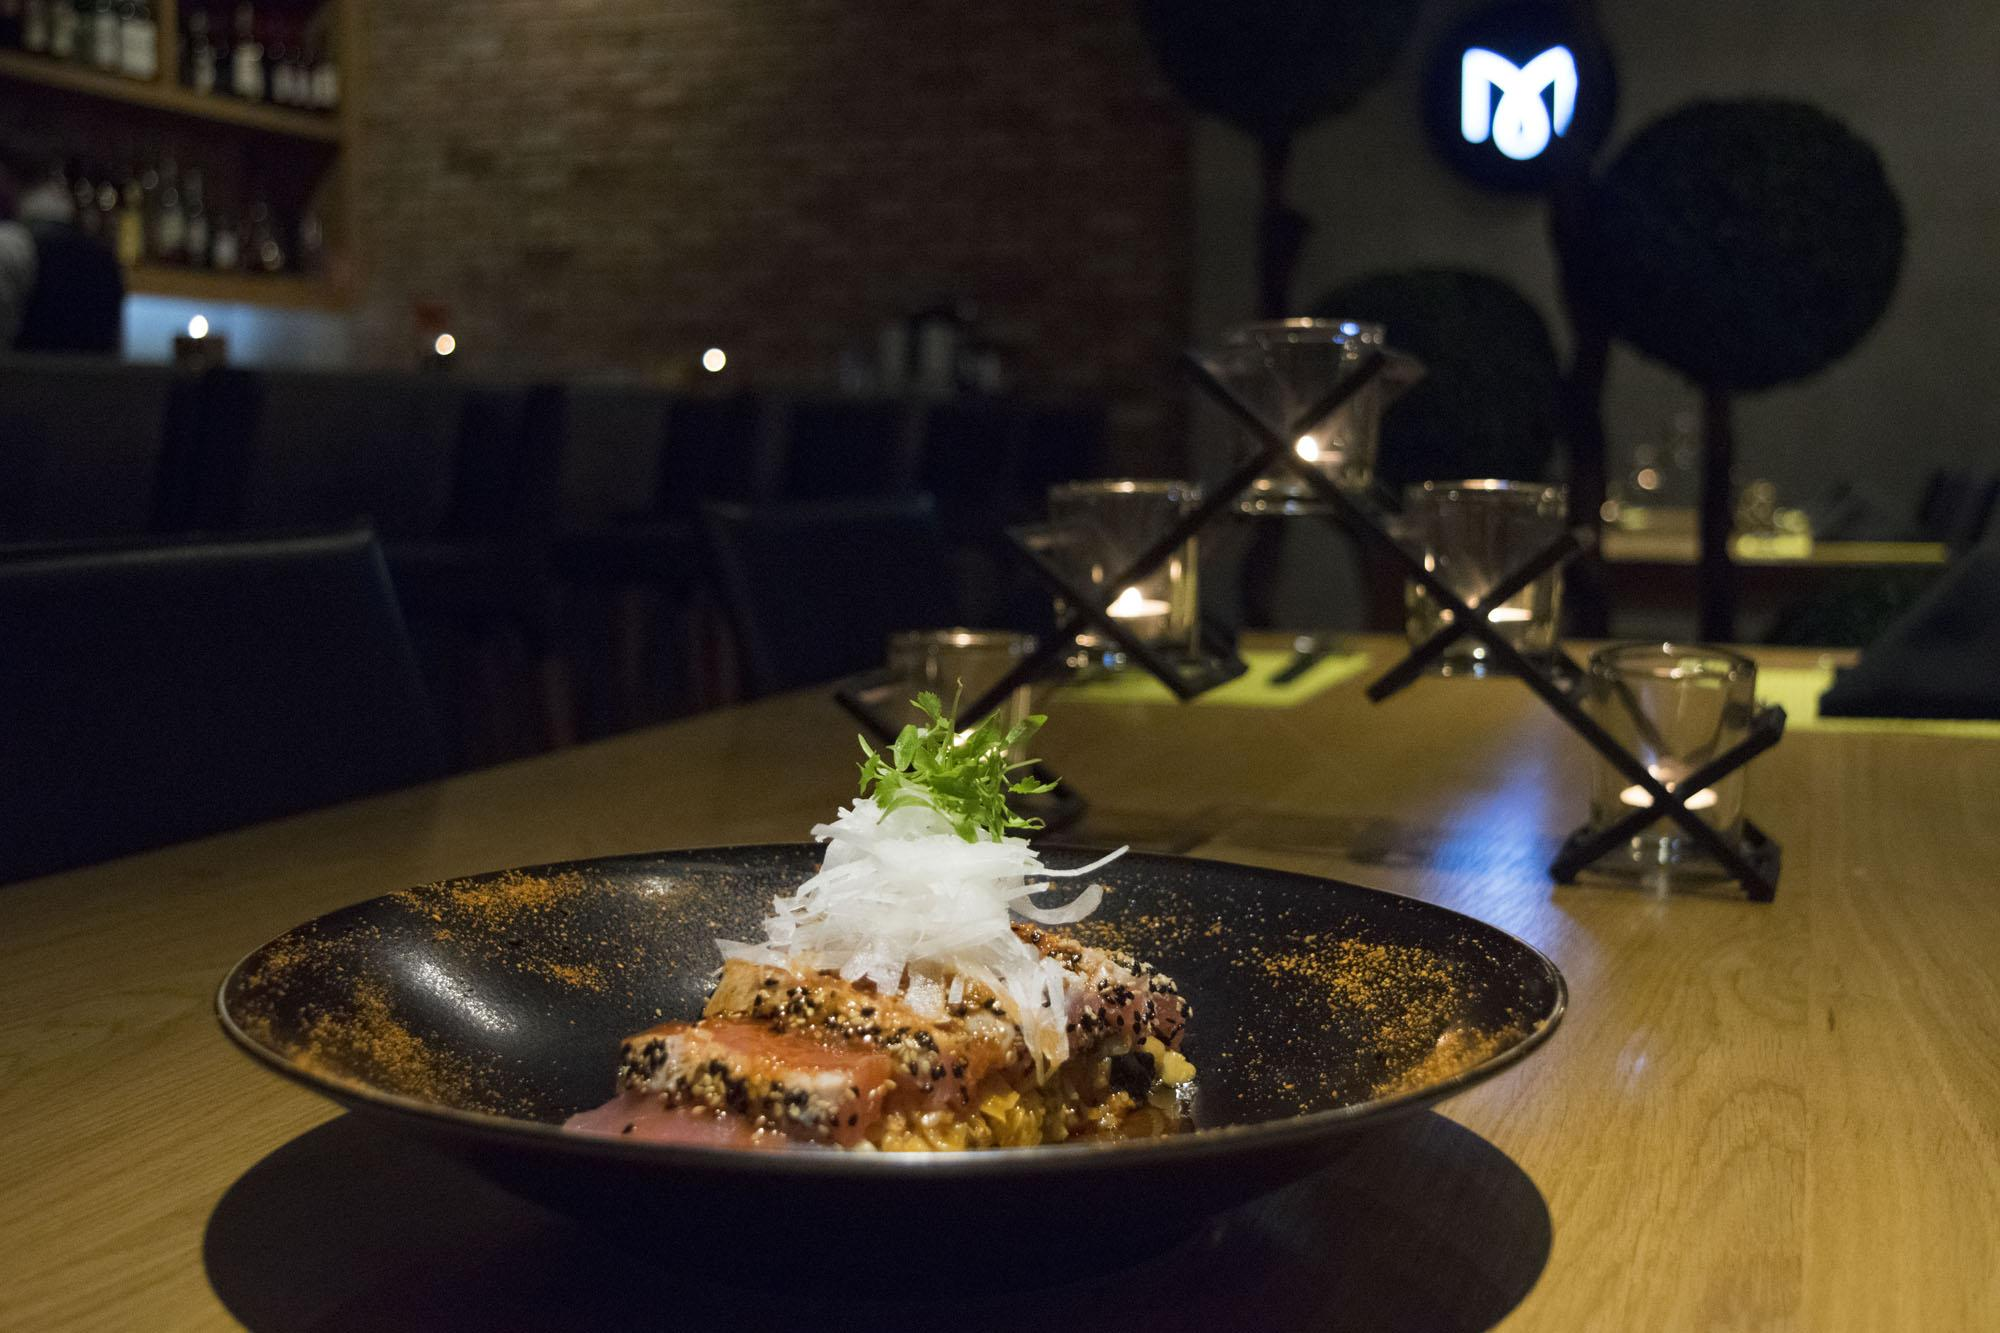 Celebrating+its+one+year+anniversary+on+September+5%2C+Miga+offers+American+food+fused+with+Asian+and+French+flavors+and+a+new+Sunday+brunch+menu.